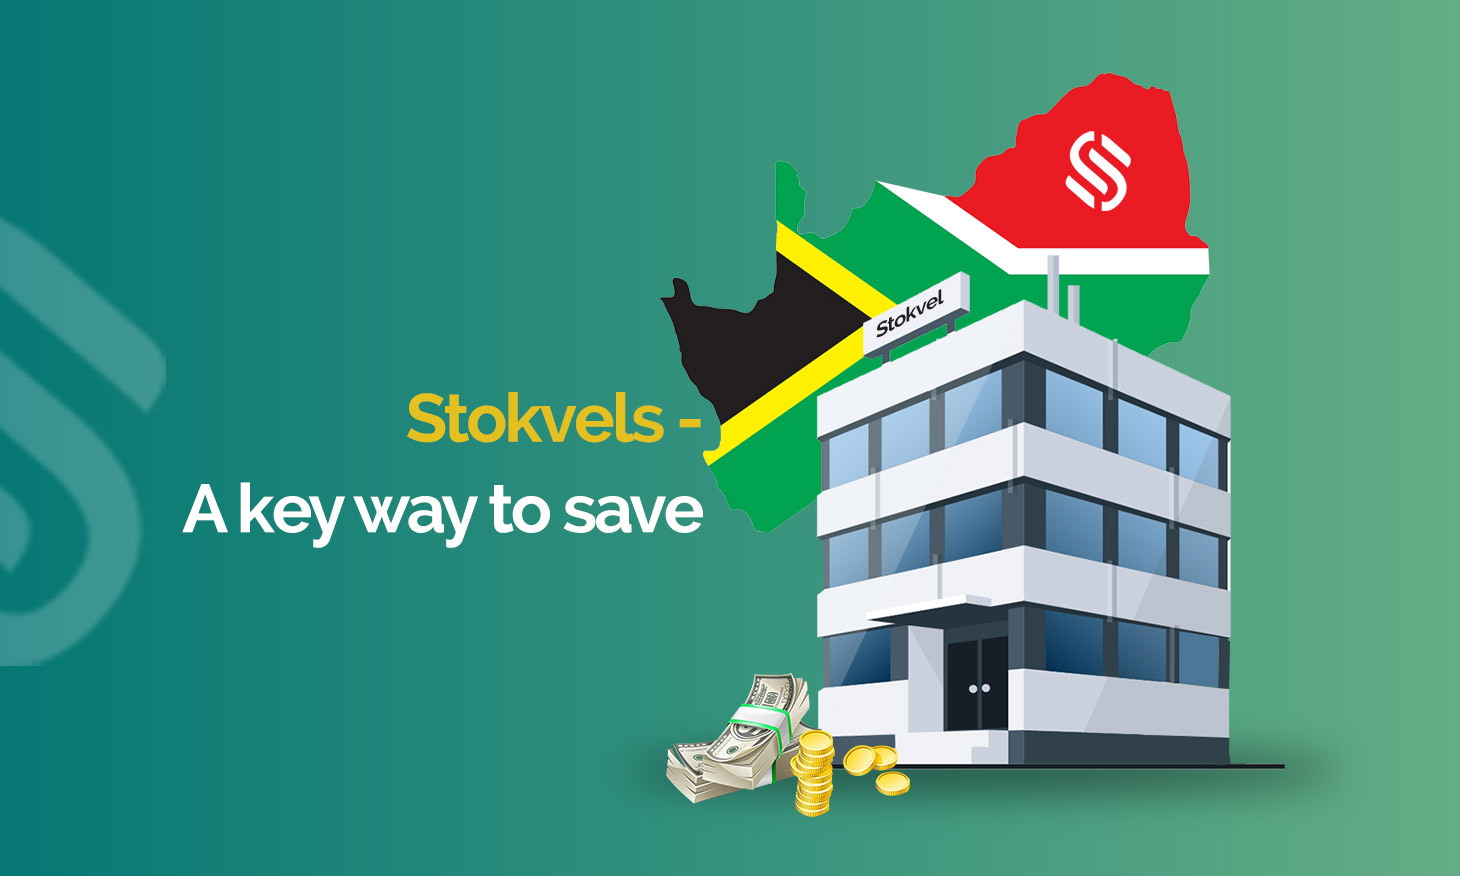 Stokvels in South Africa